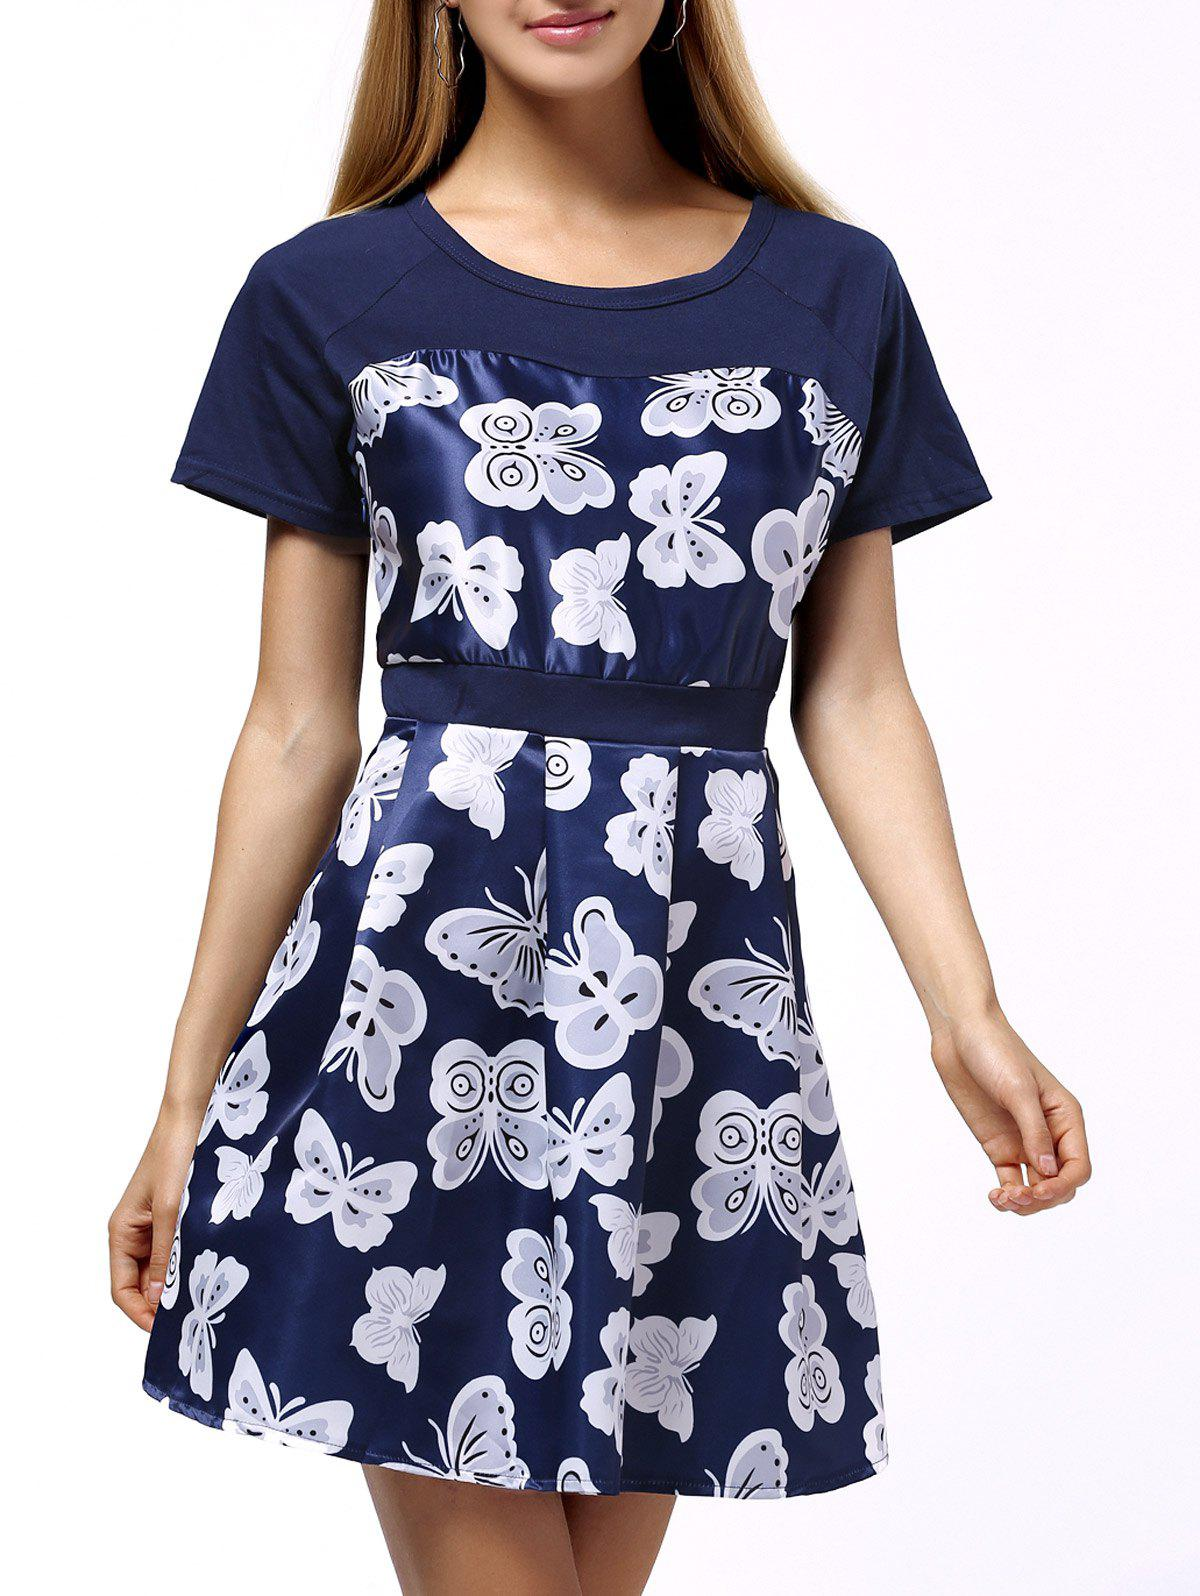 Butterflies Pattern Waisted Shape Women's Dress - BLUE 4XL